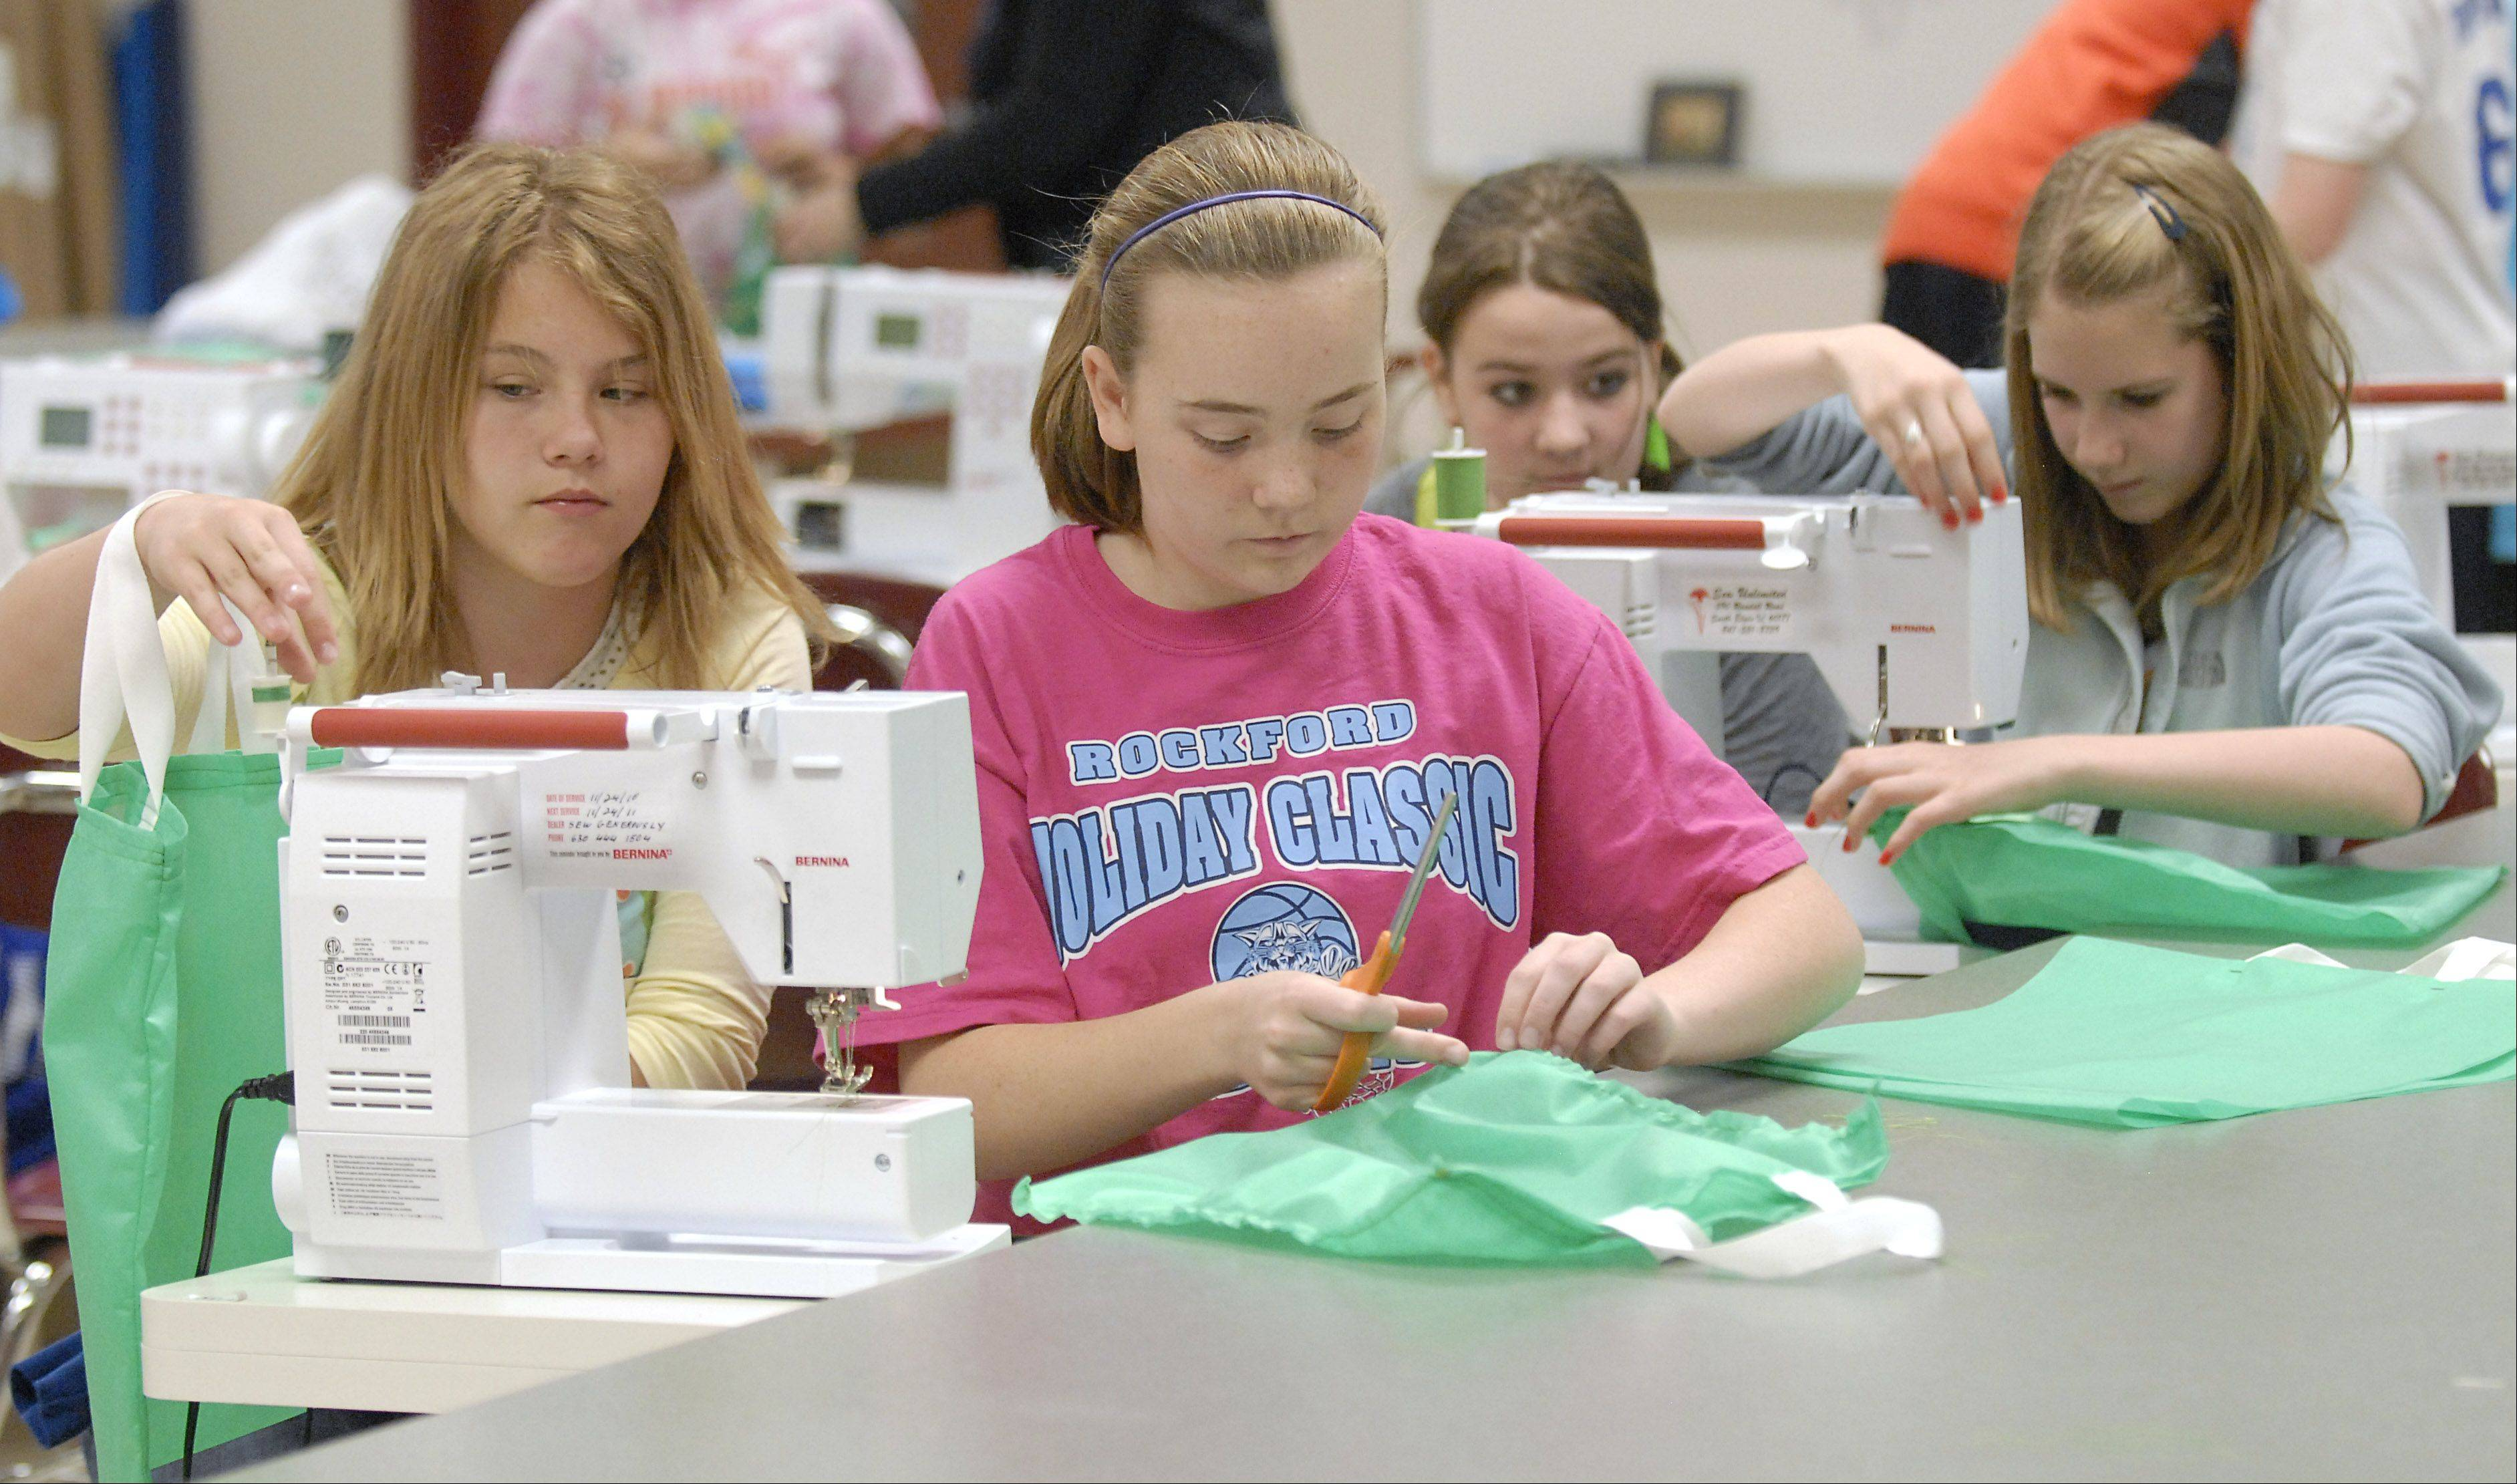 Seventh graders Jordan Witmer, left, and Jasey Segebrecht, both 13, finish sewing their reusable tote bag projects Friday at Geneva Middle School North. The seventh-grade class celebrated Earth Day by making the totes as well as crafts using recycled items.